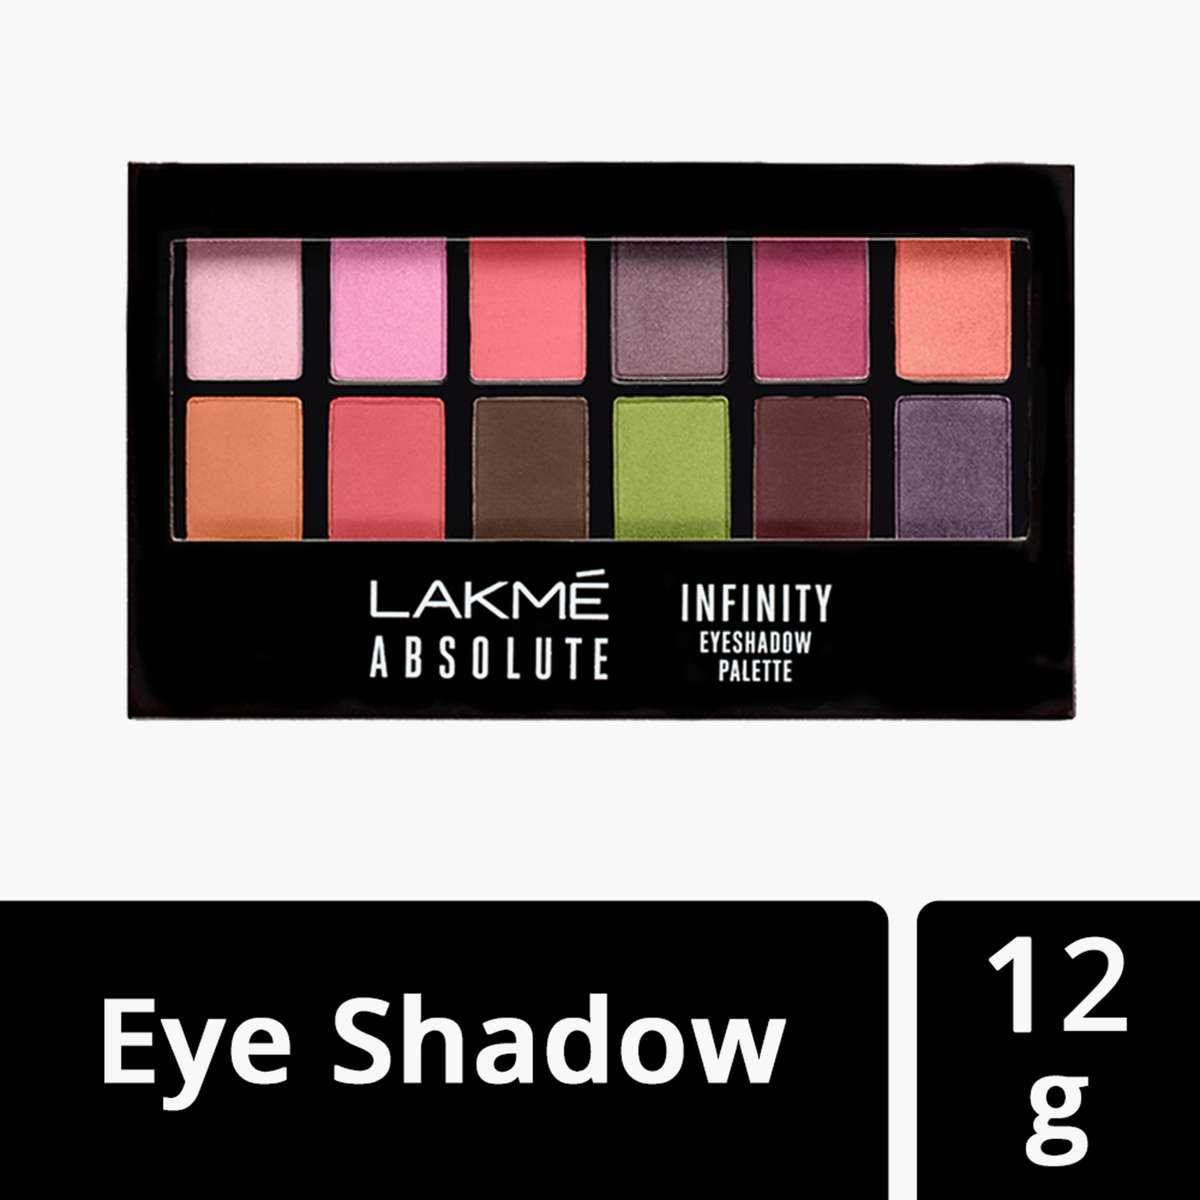 Lakme Absoulte Infinity Eyeshadow palette -12 g